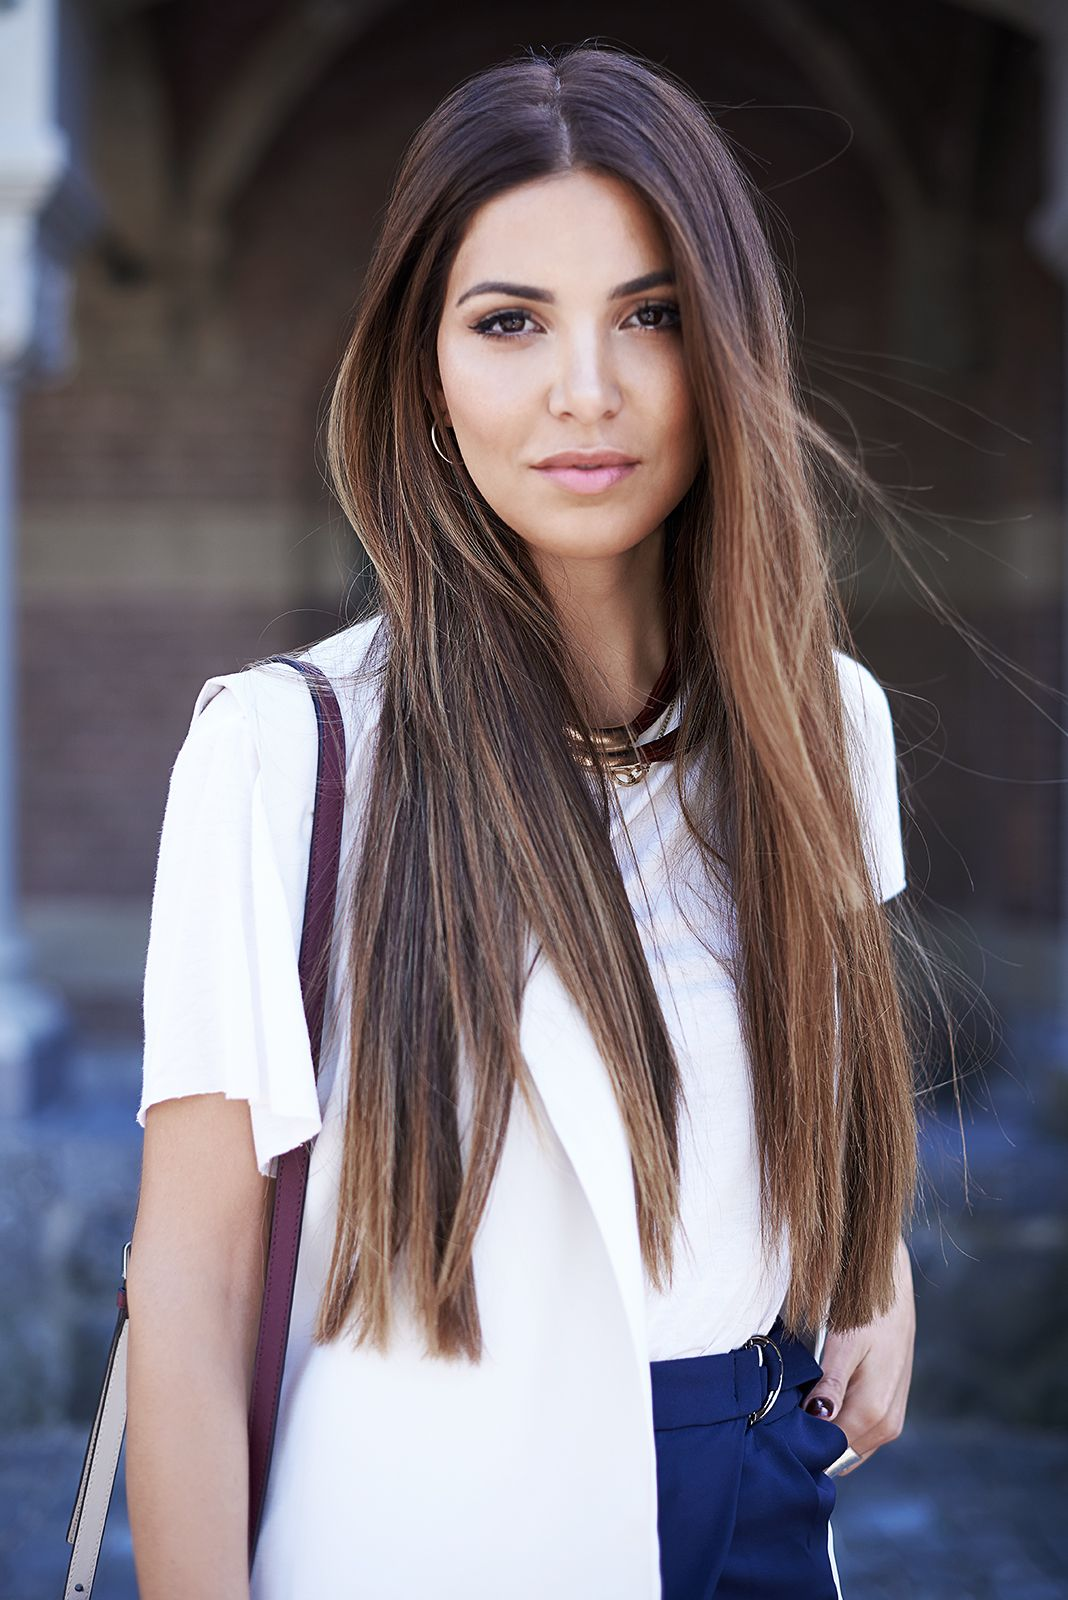 Discussion on this topic: Blunt, Long Hairstyles Trends: Prom Hair Styles, blunt-long-hairstyles-trends-prom-hair-styles/